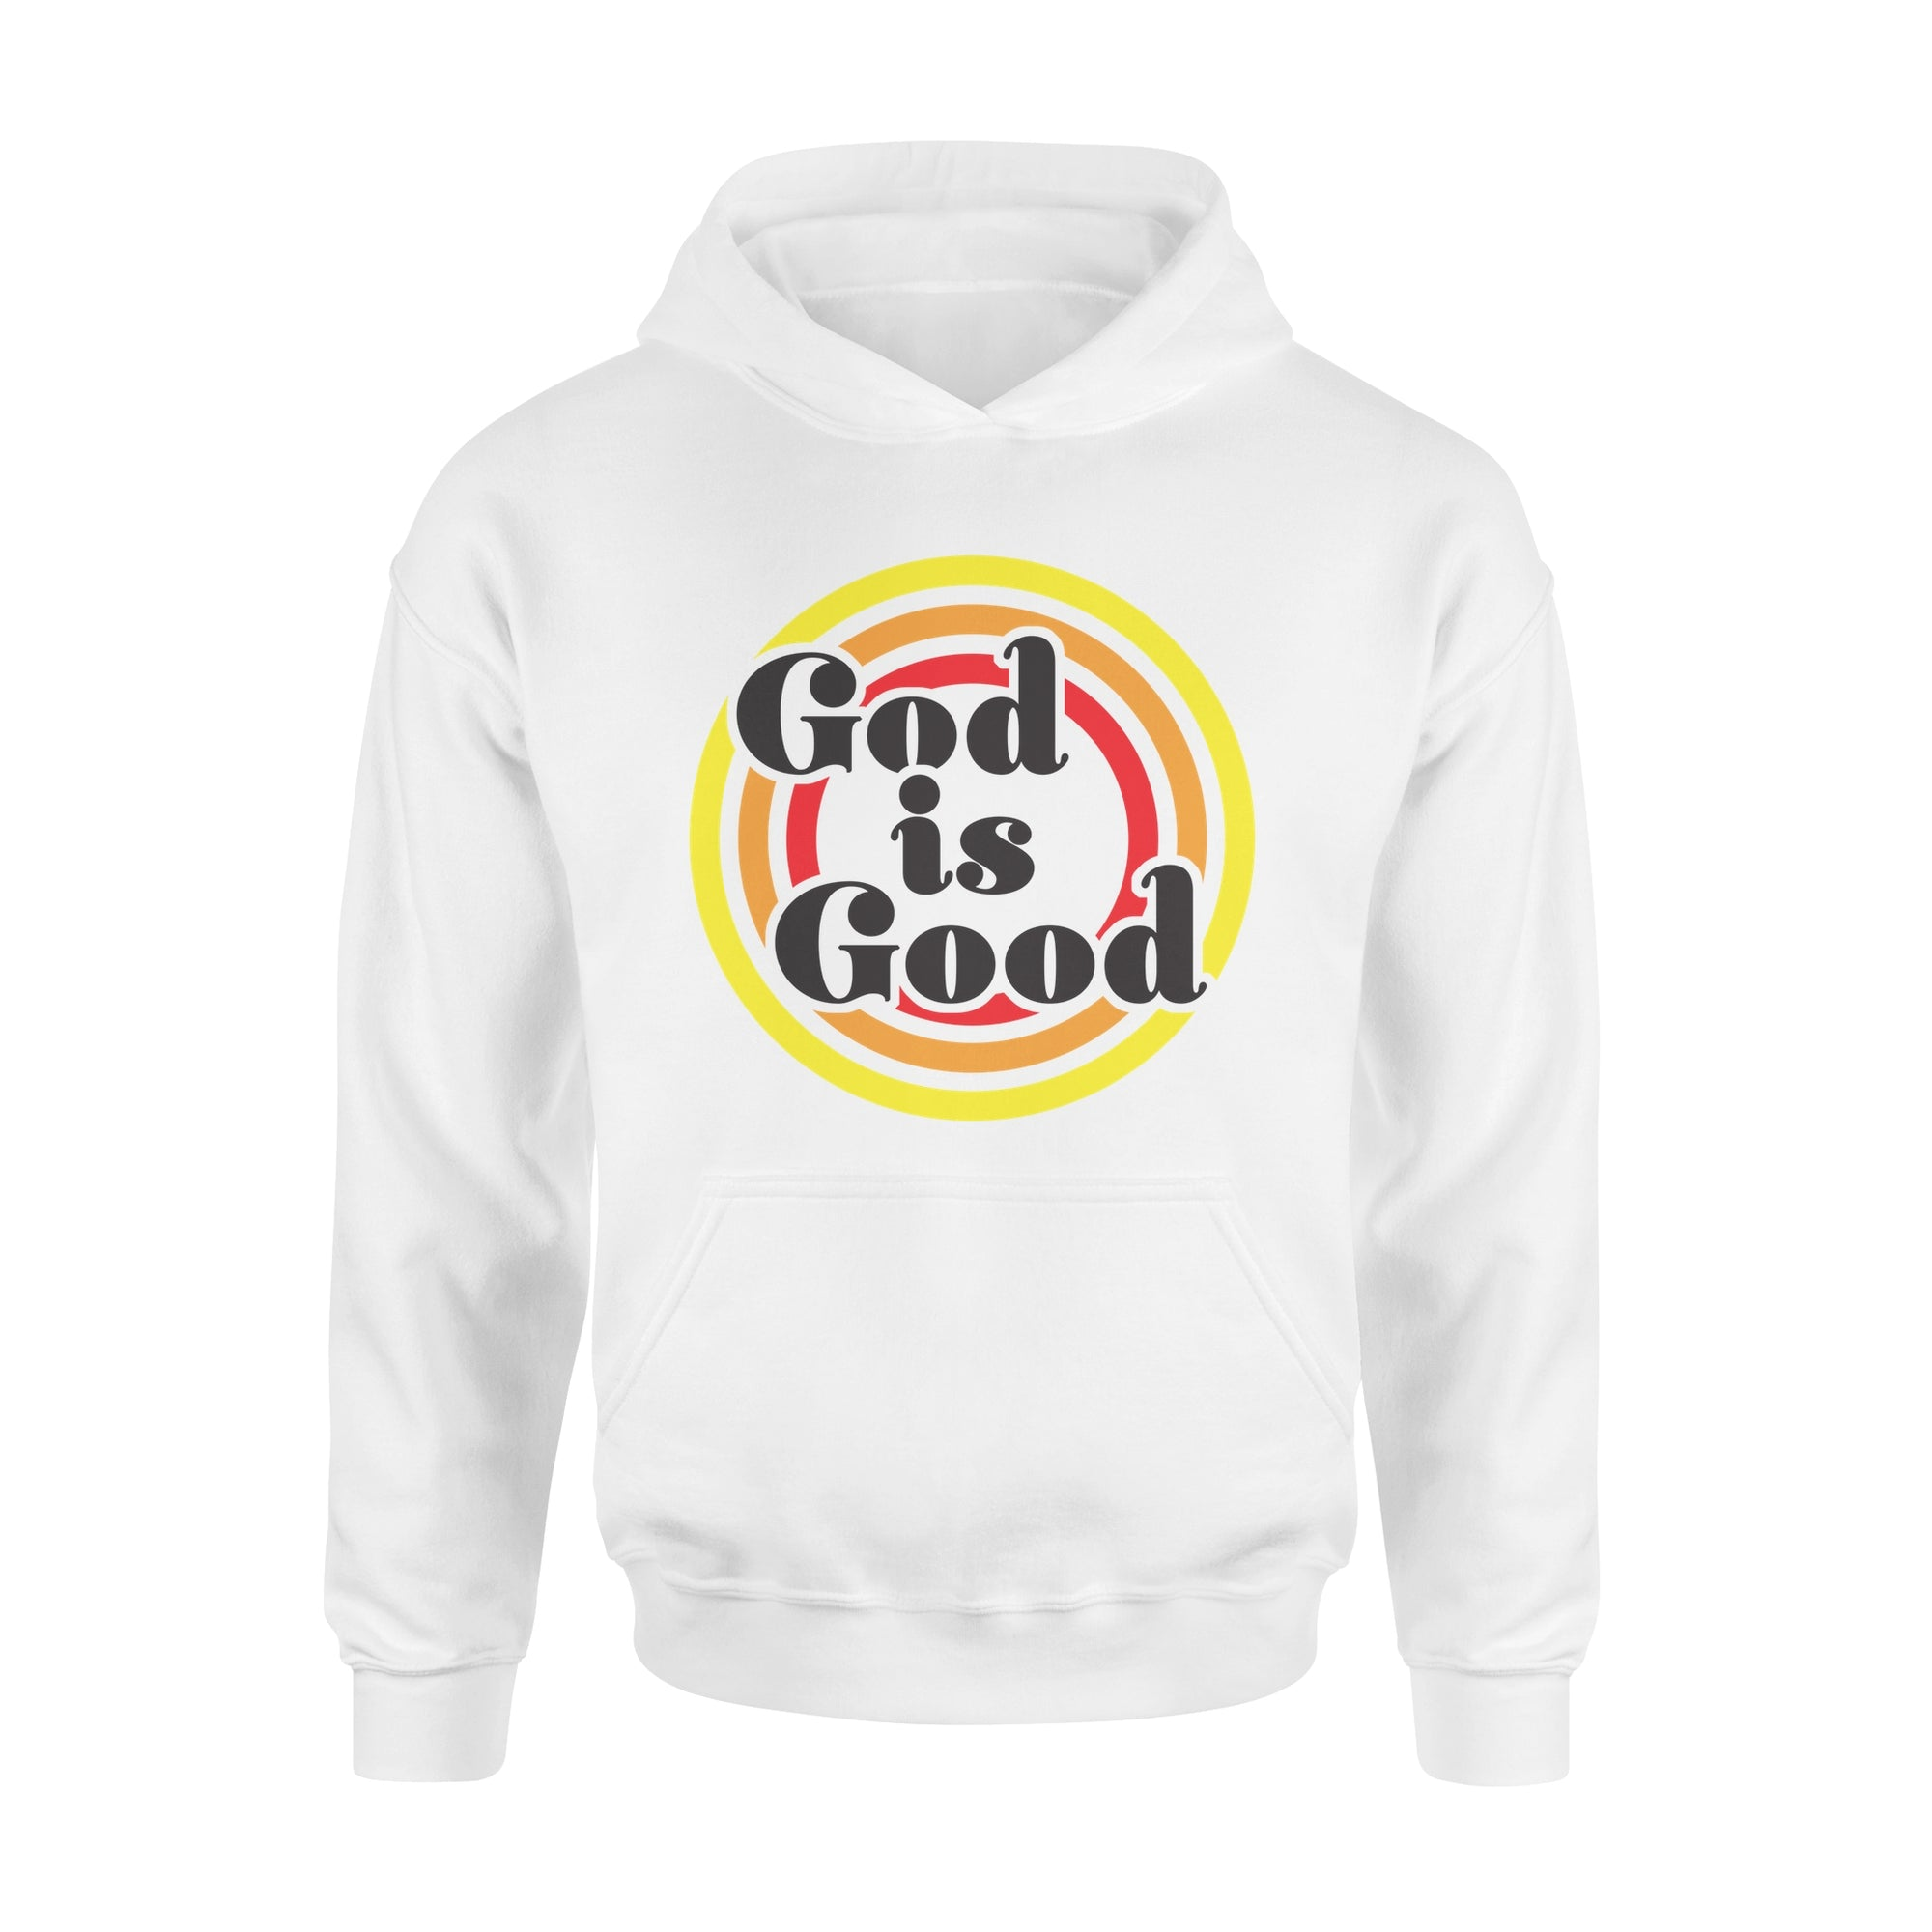 VIRA Awesome Premium Hoodie For God Lovers